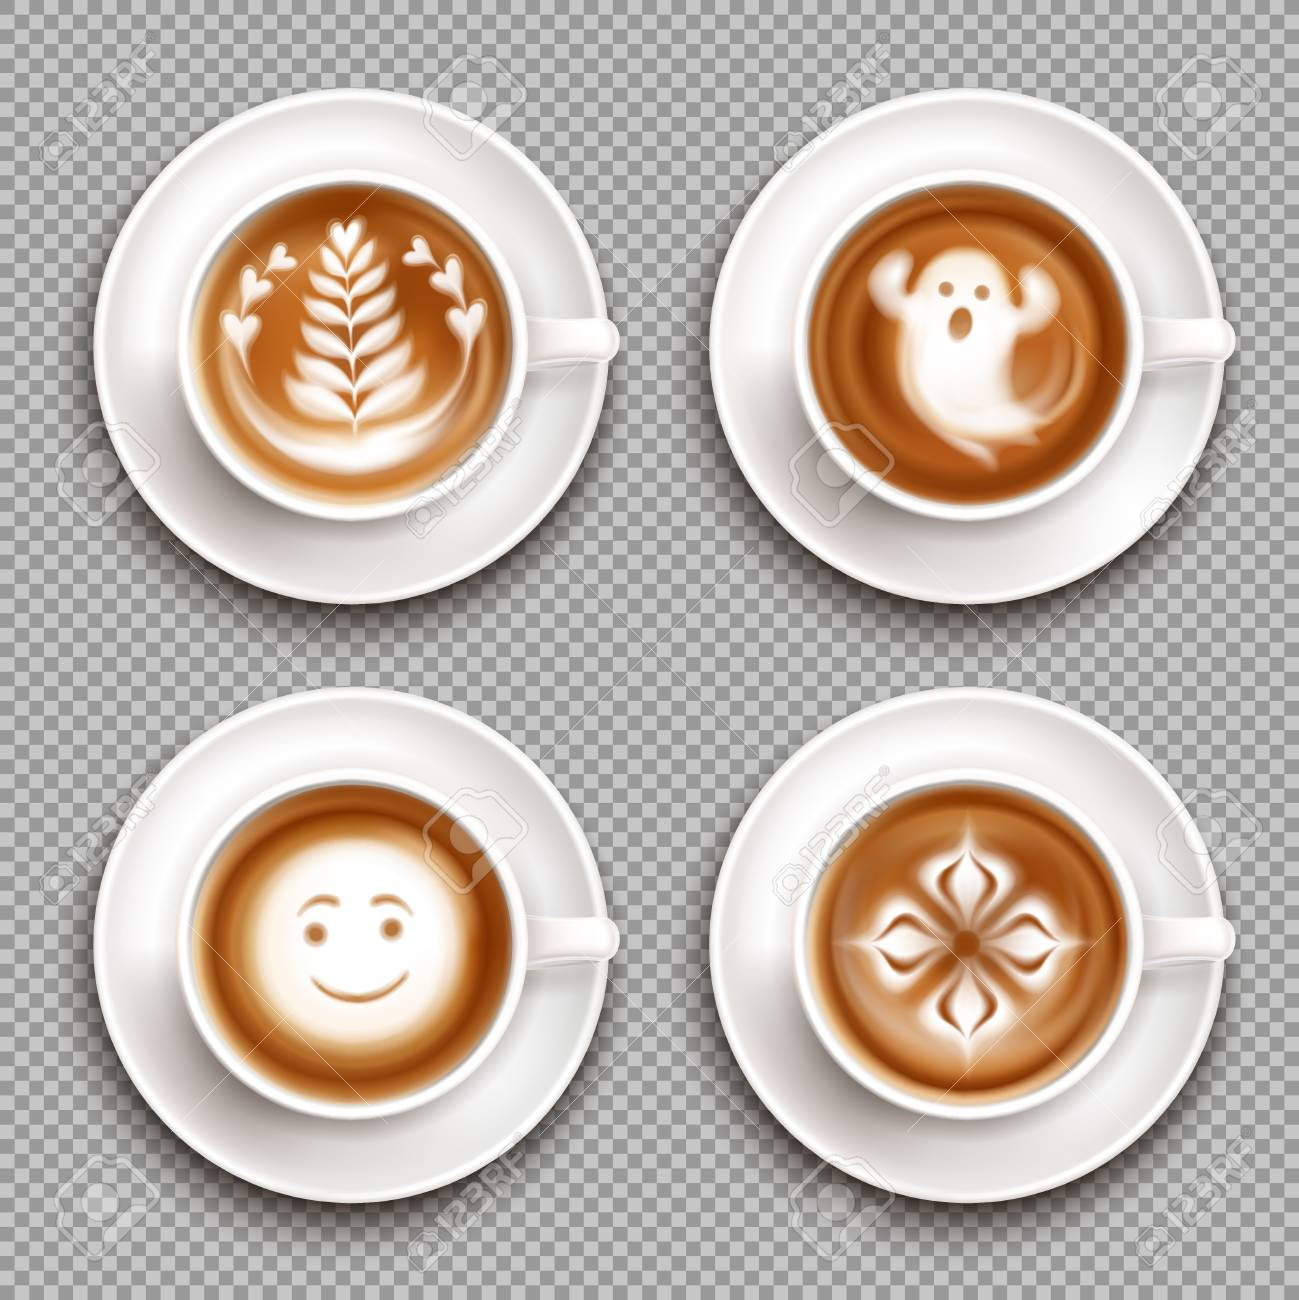 Colored Latte Art Top View Icon Set With Art In Mugs And Transparent Royalty Free Cliparts Vectors And Stock Illustration Image 117044338